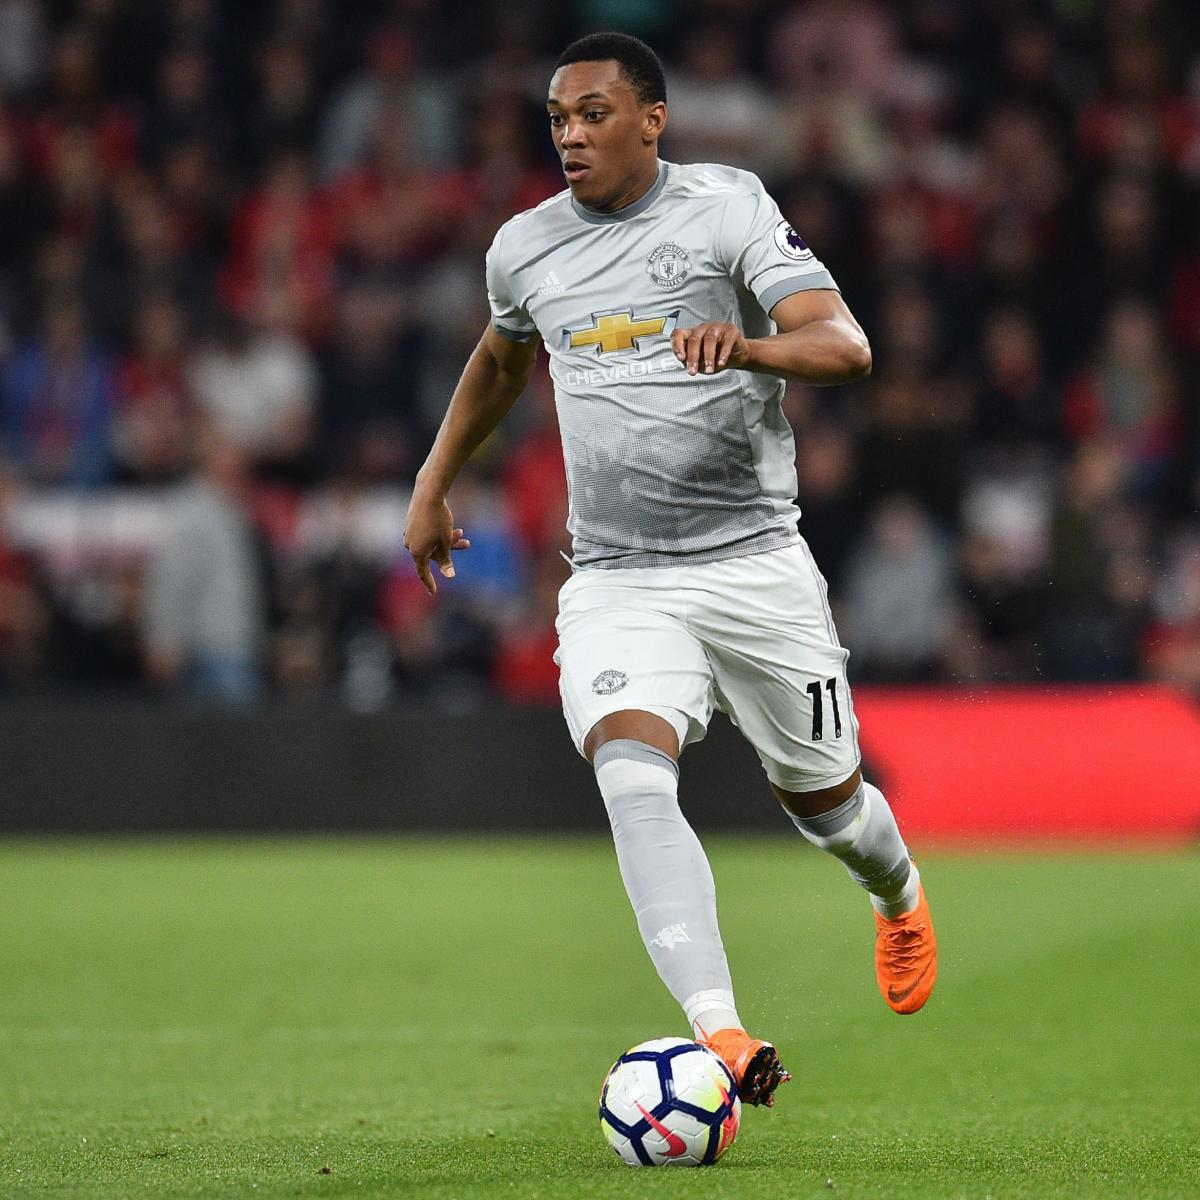 Manchester United Transfer News: Latest on Anthony Martial Exit Rumours